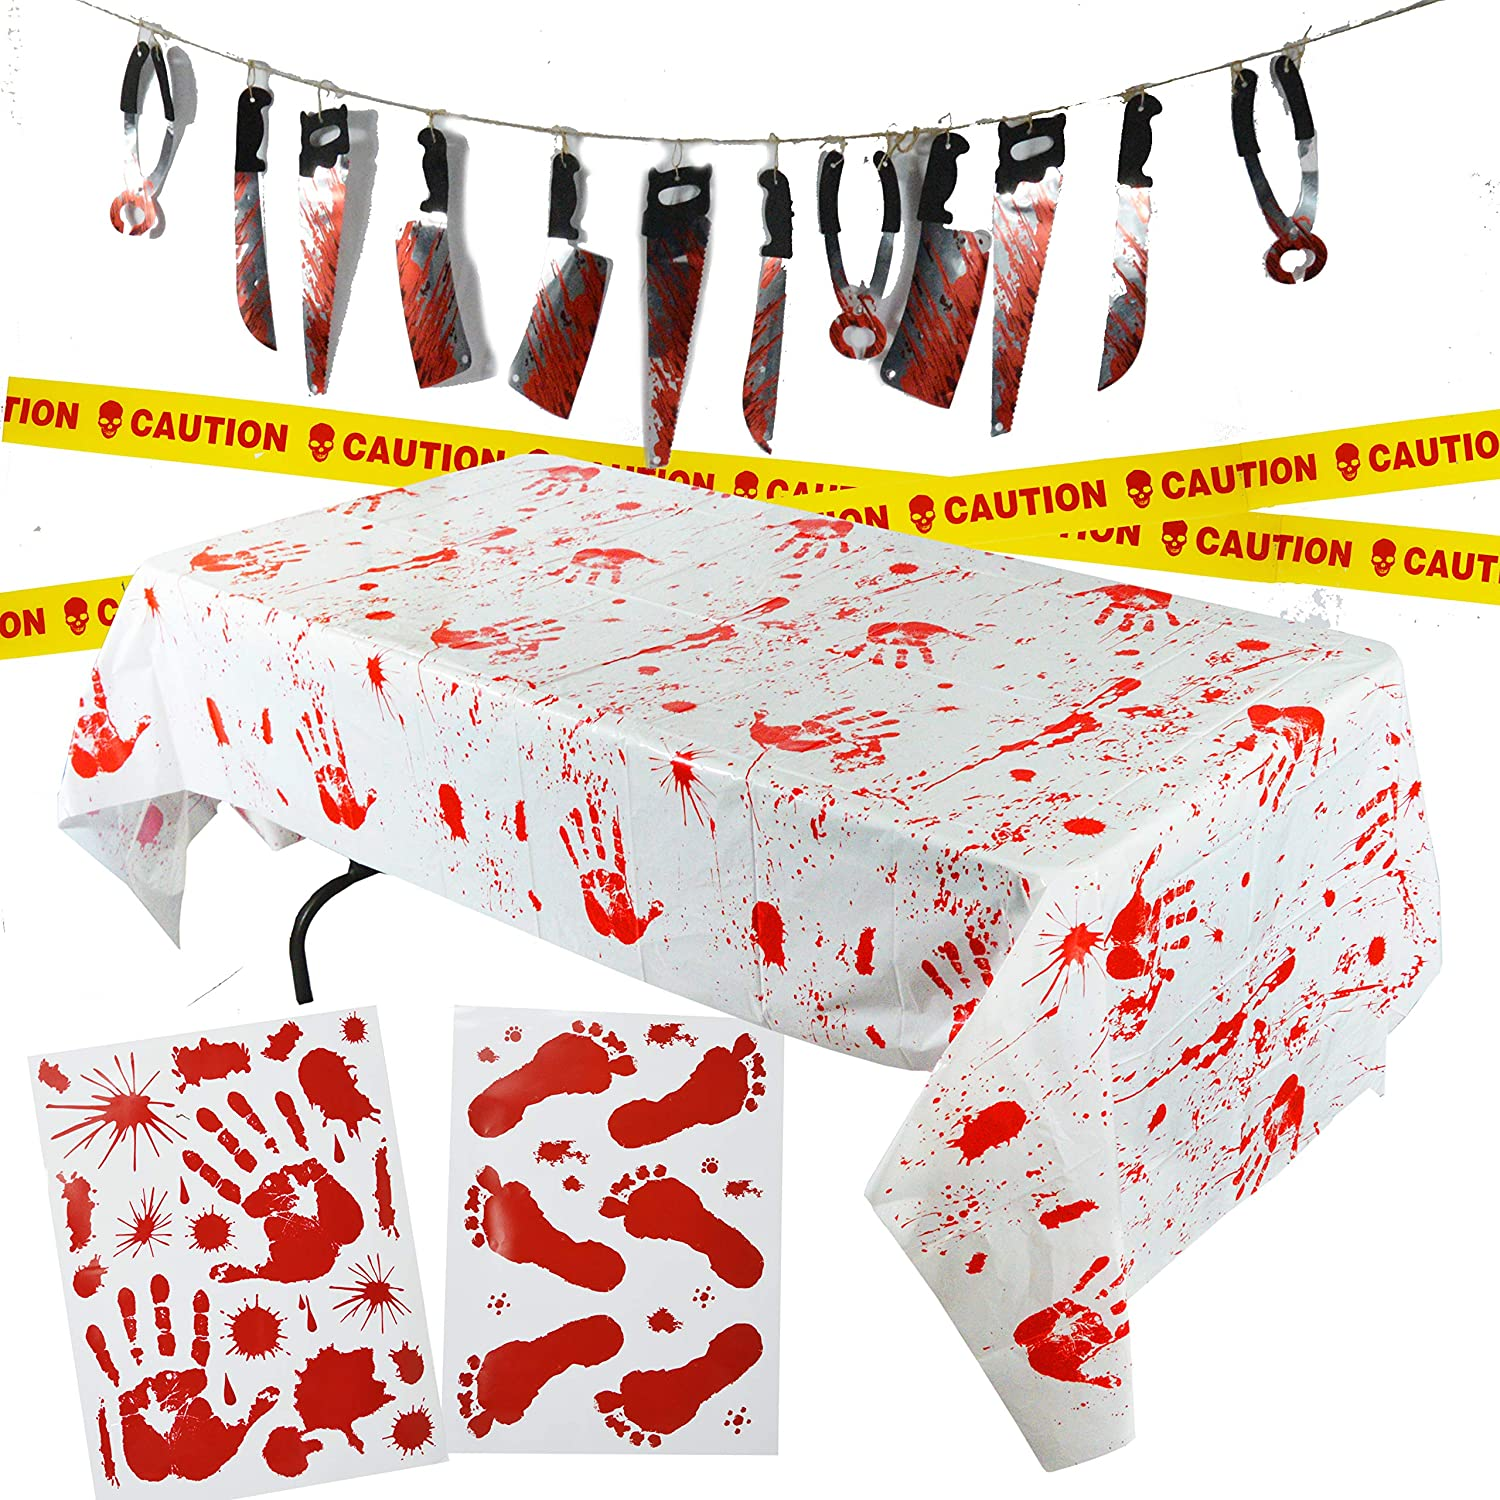 Spooktacular Creations Halloween Party Decoration Set, Including Bloody Tablecover, Weapon Garland, Bloody Clings and Caution Tapes, 5 Piece